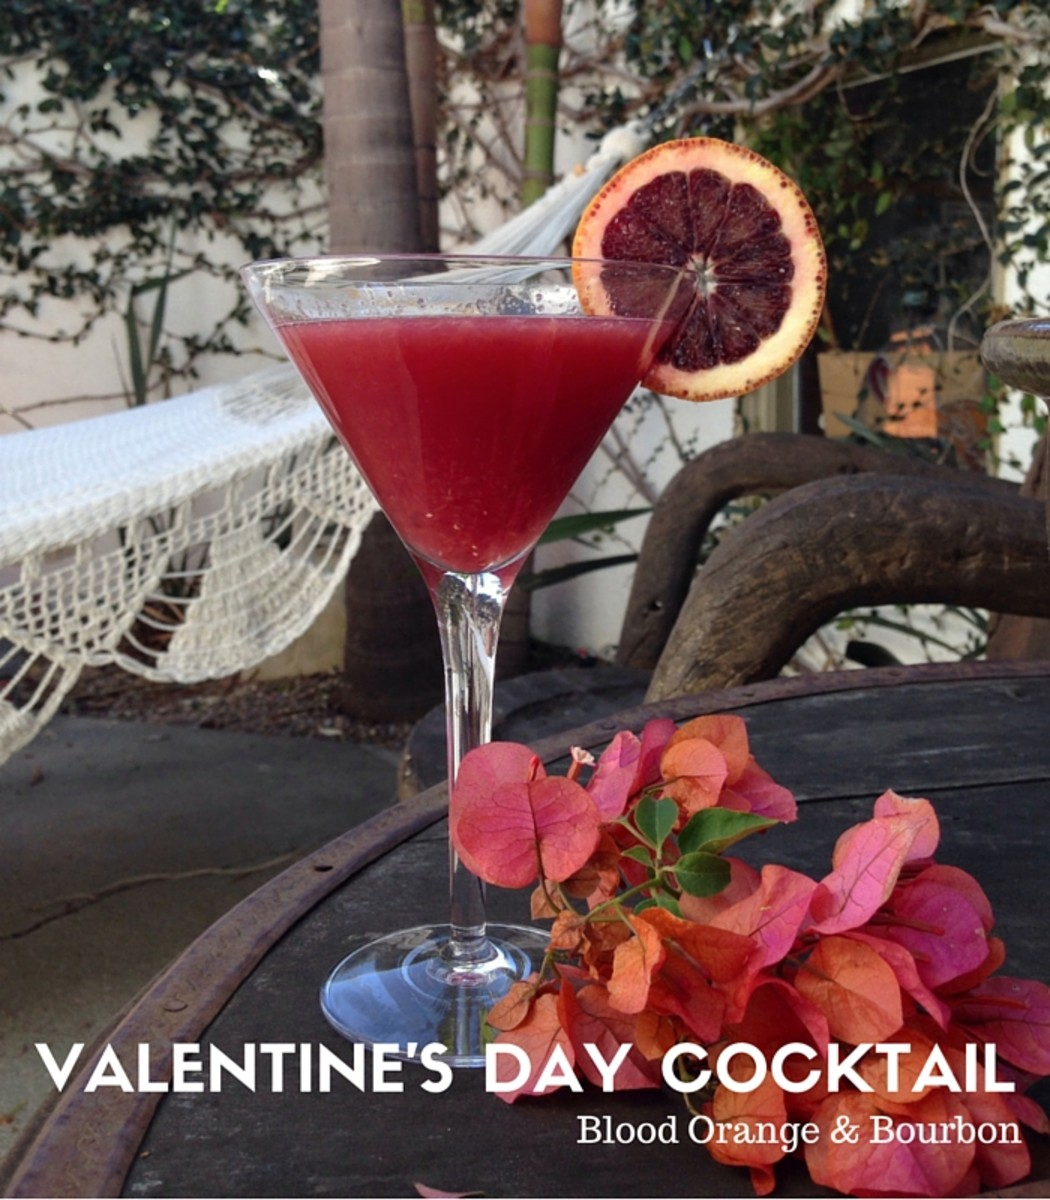 VALENTINE'S DAY COCKTAIL(1)